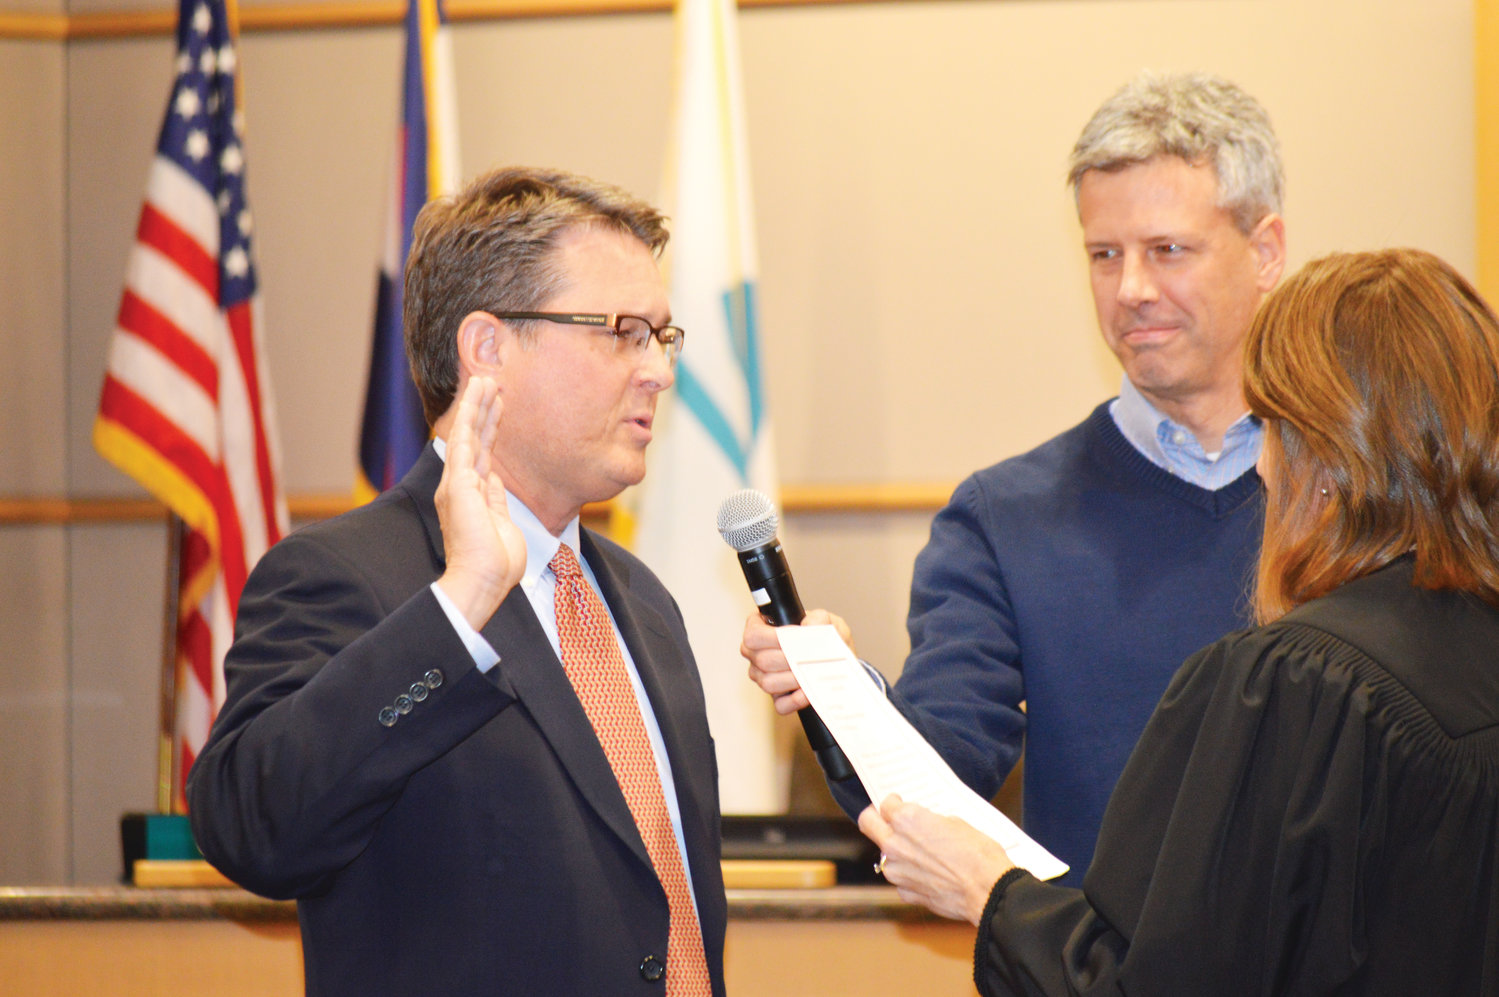 Newly named City Councilor Jon Voelz swears his oath of office Jan. 28 in front of Municipal Judge Tiffany Sorice while his partner, T.C. Hosna holds the microphone.